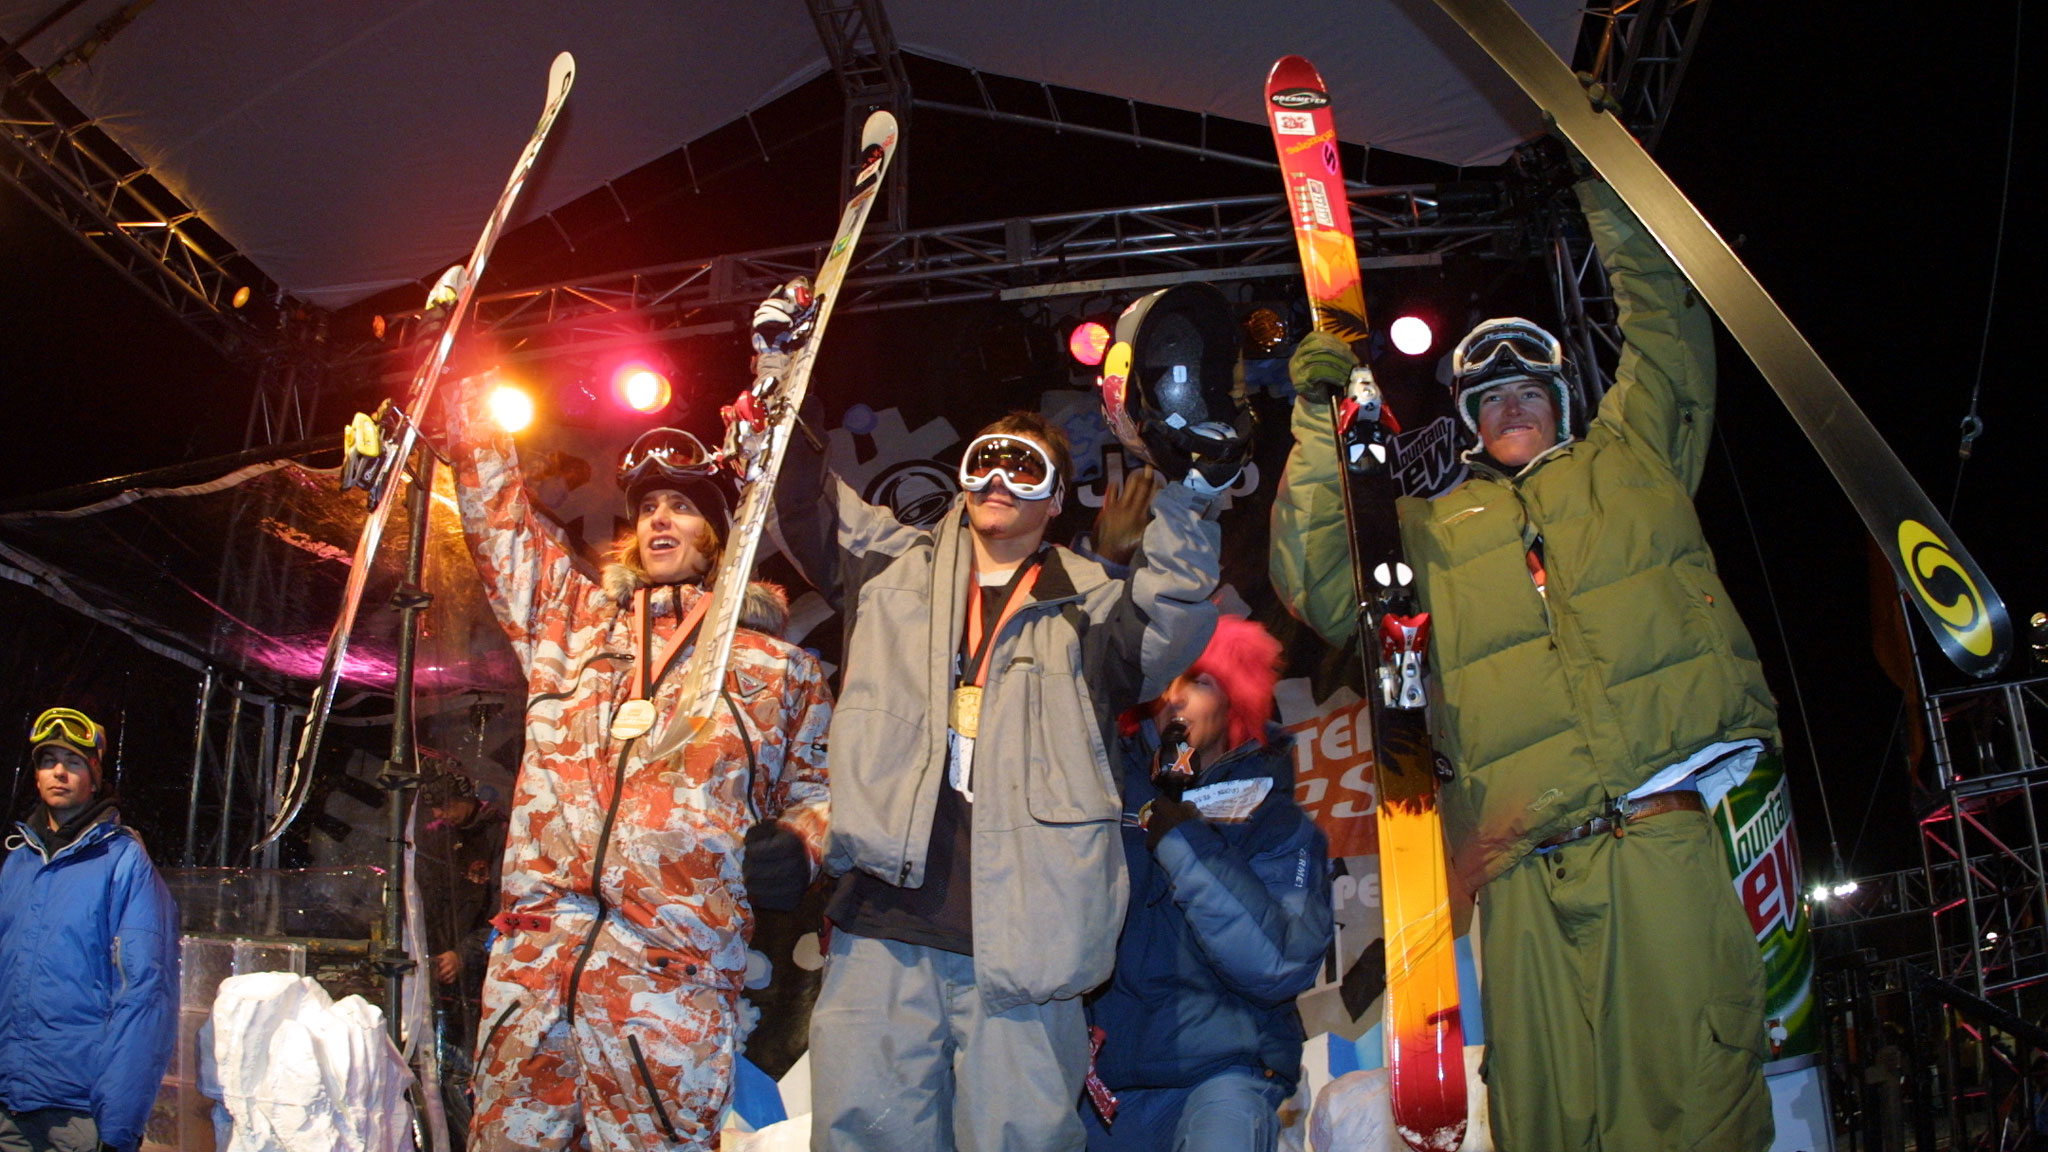 Men's SuperPipe Podium, 2004